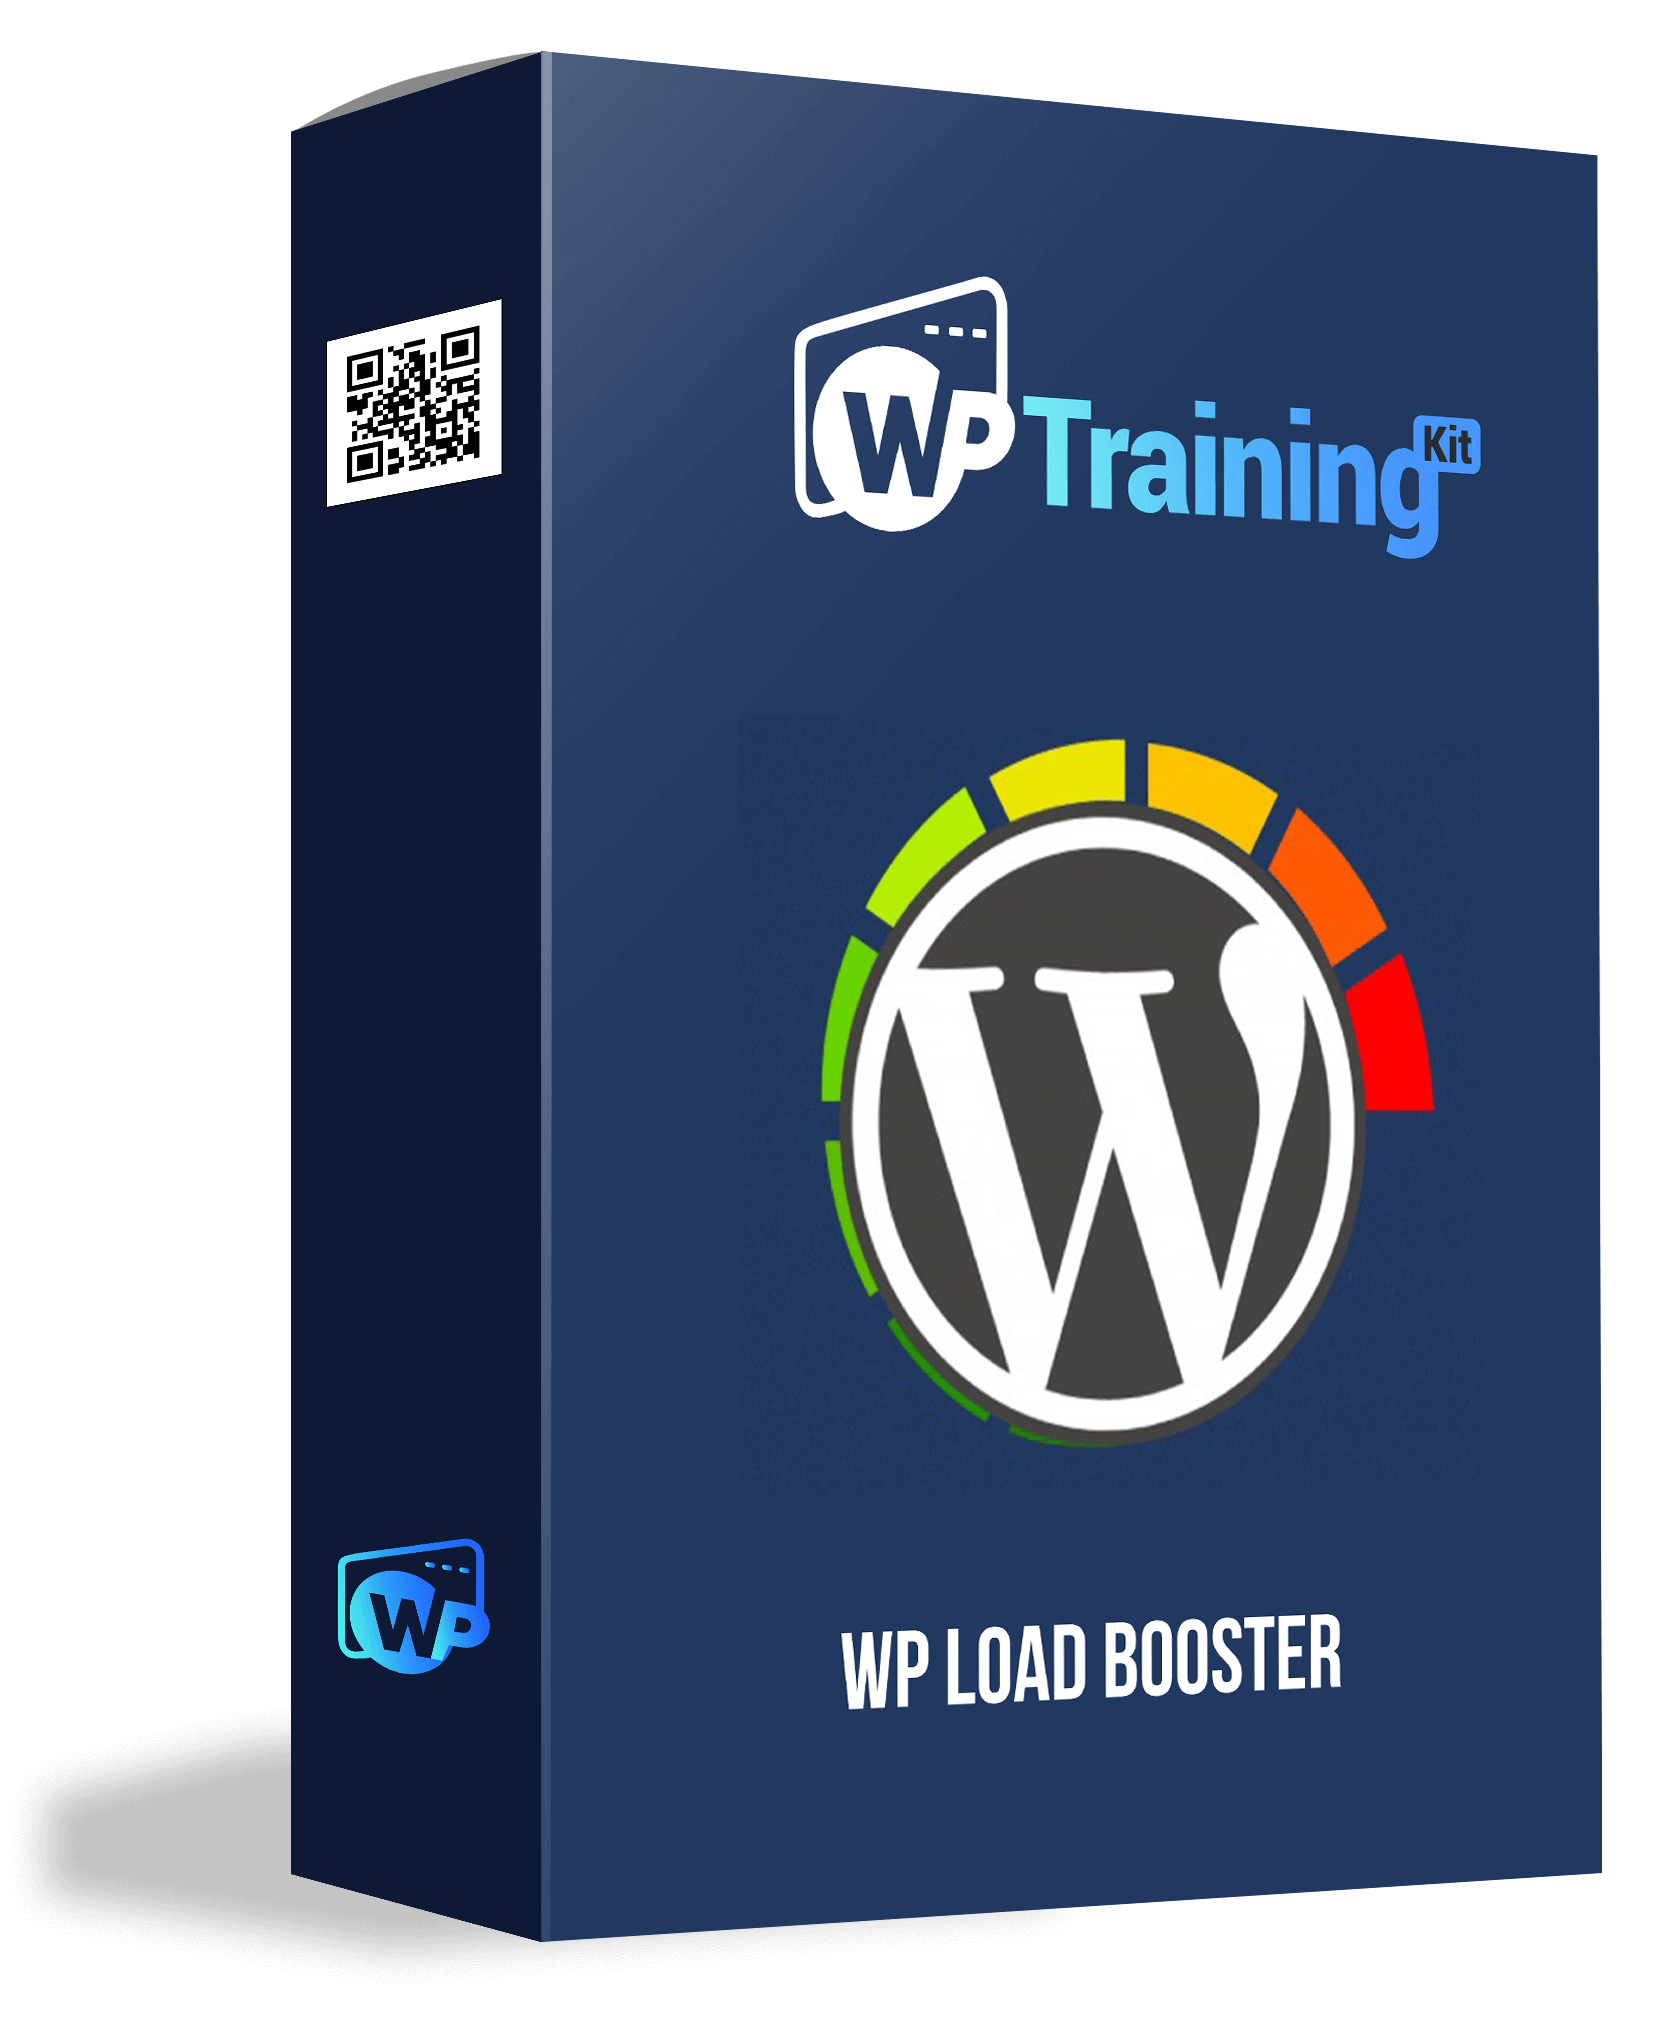 Bonus 2. WP Load Booster Box Design